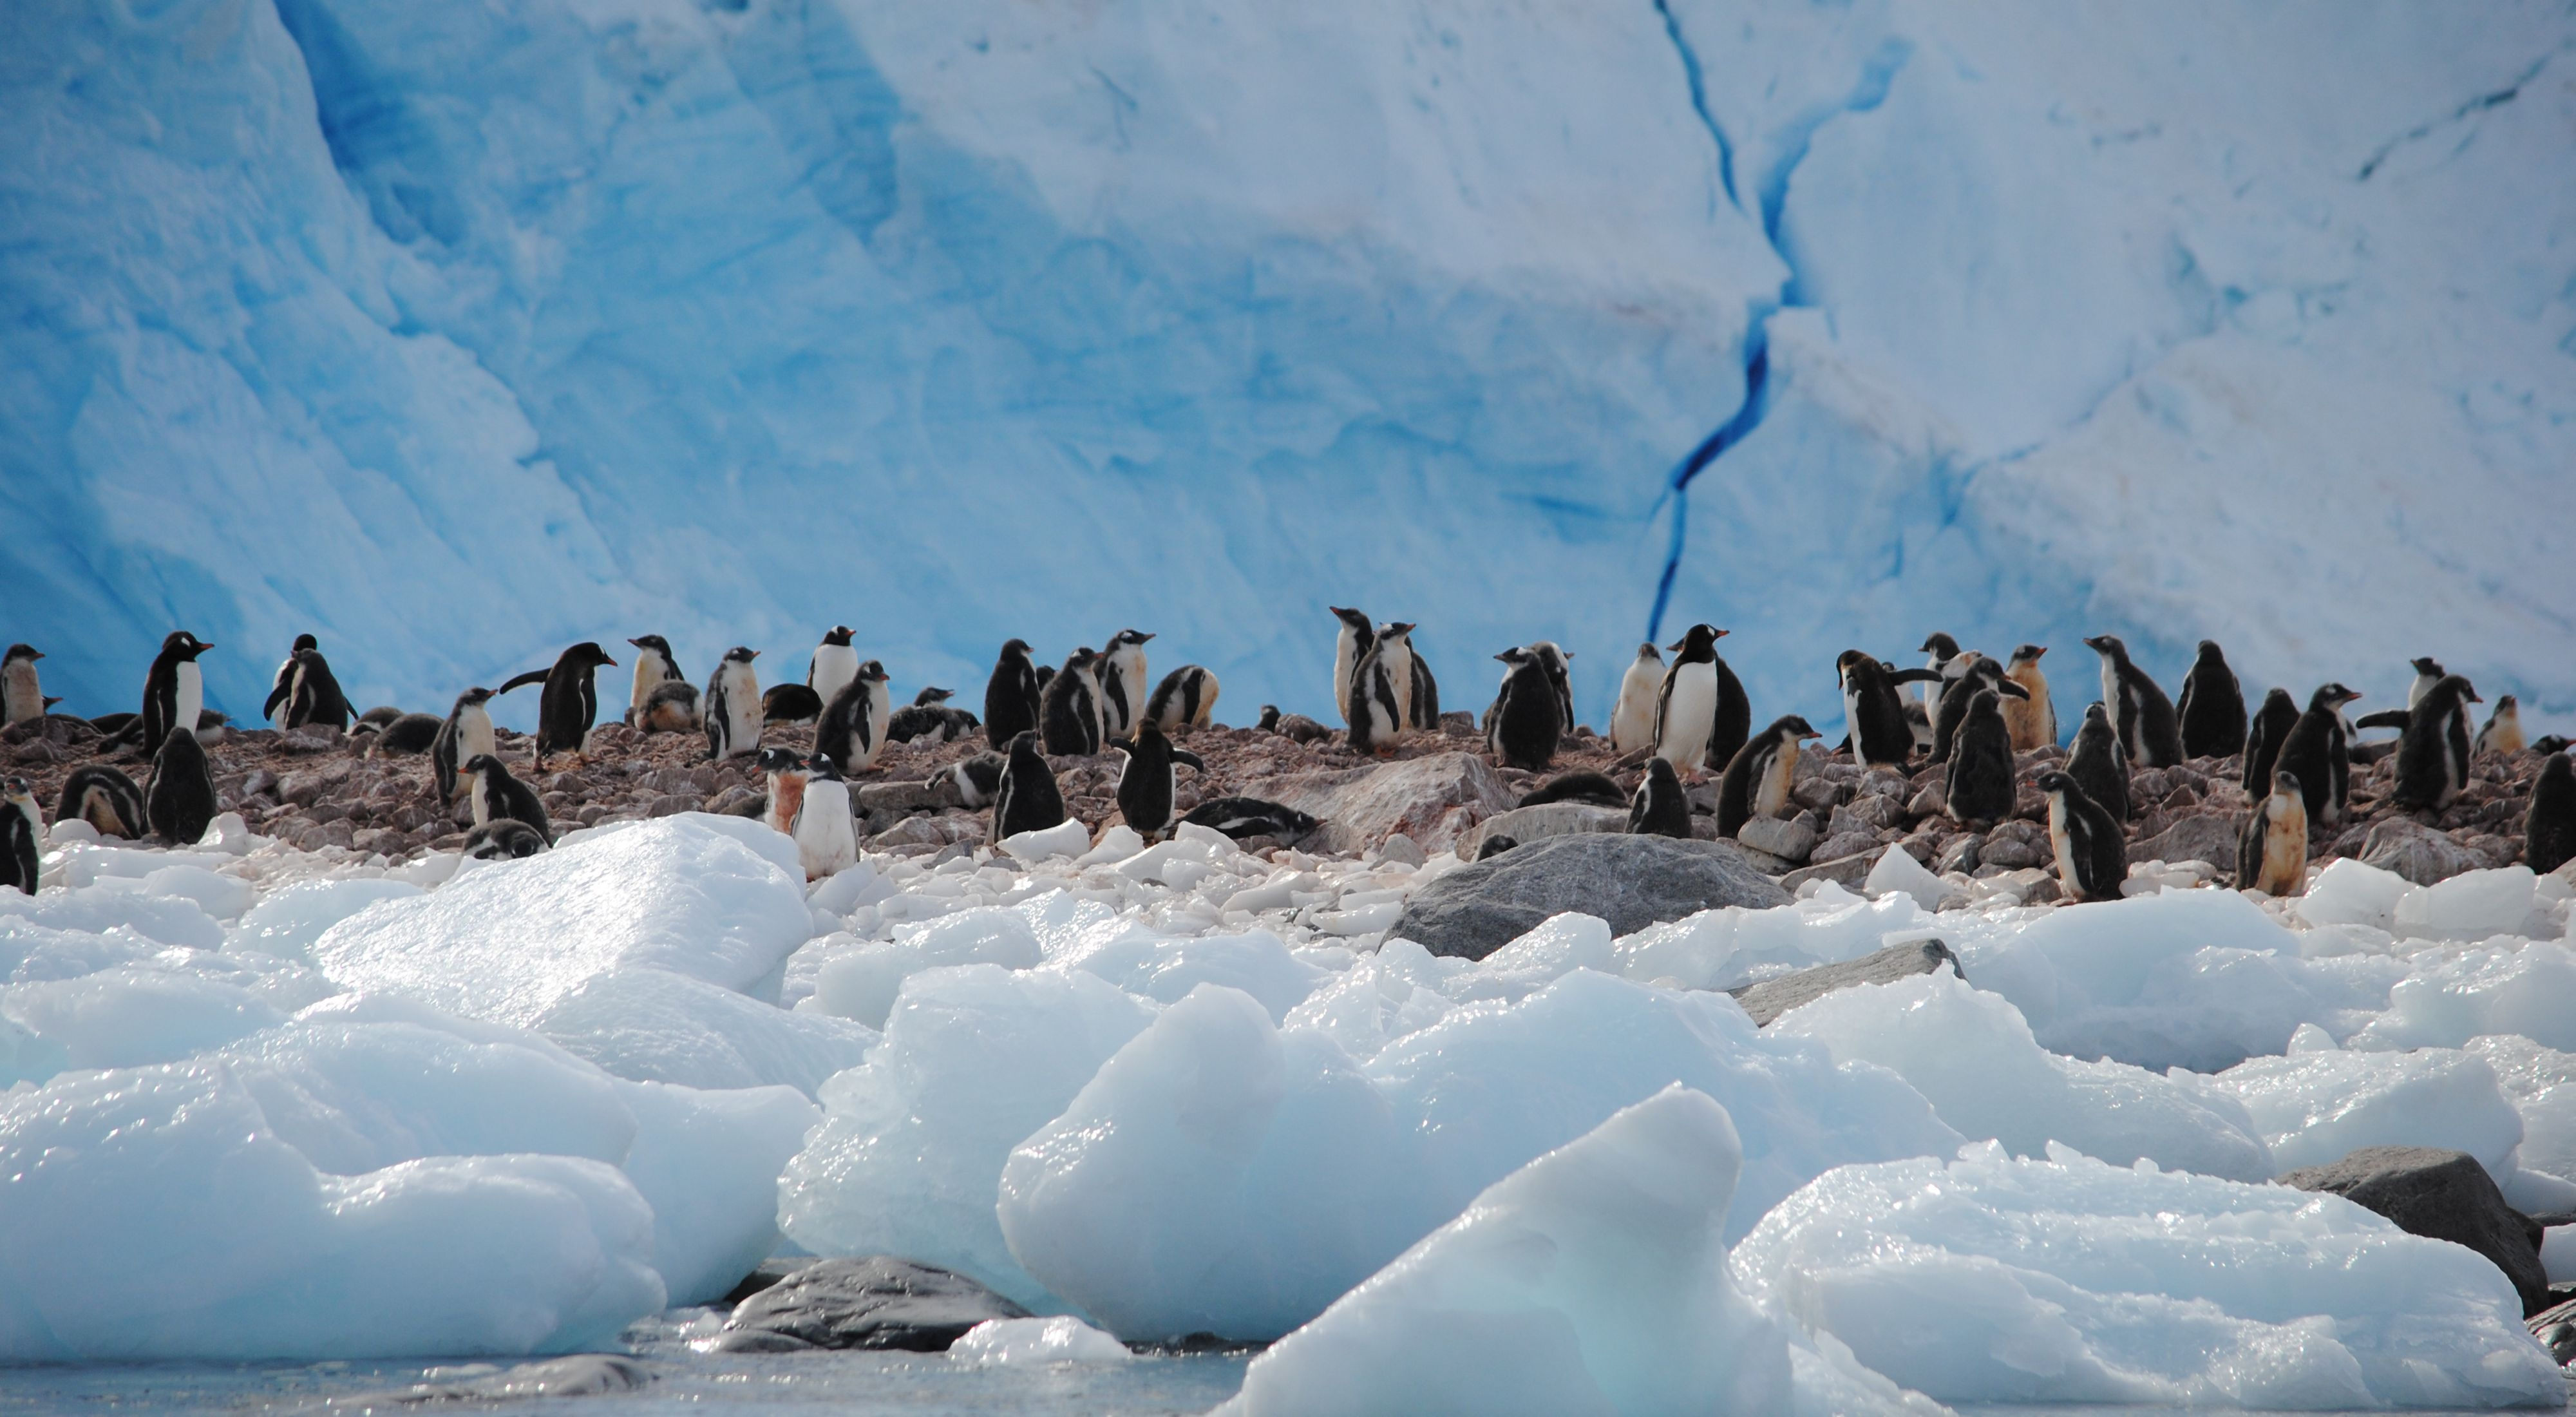 Gentoo penguins on an iceberg in Antarctica.